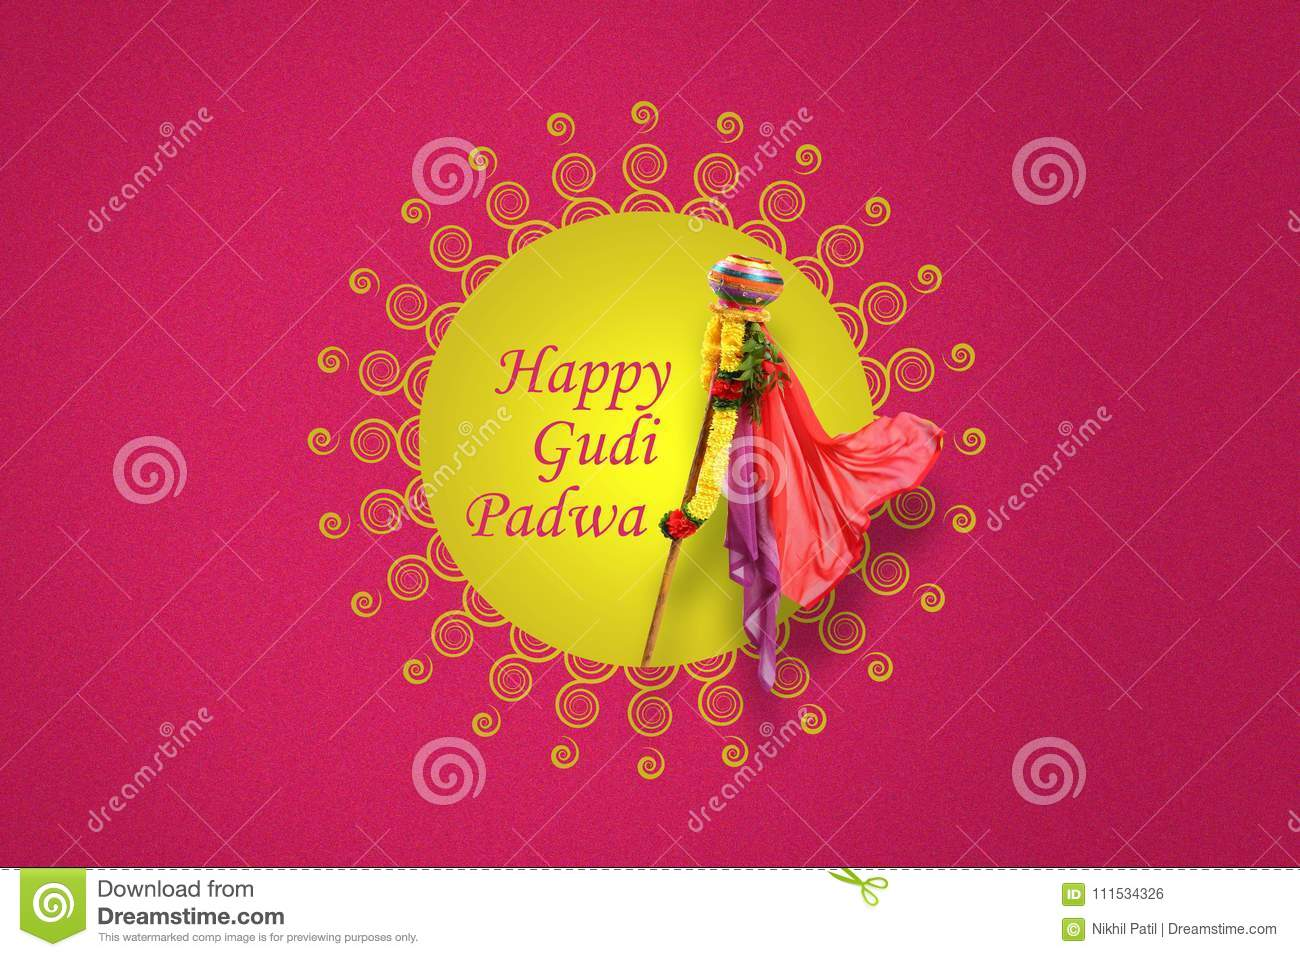 Gudi padwa marathi new year stock illustration illustration of download gudi padwa marathi new year stock illustration illustration of greeting lunar 111534326 m4hsunfo